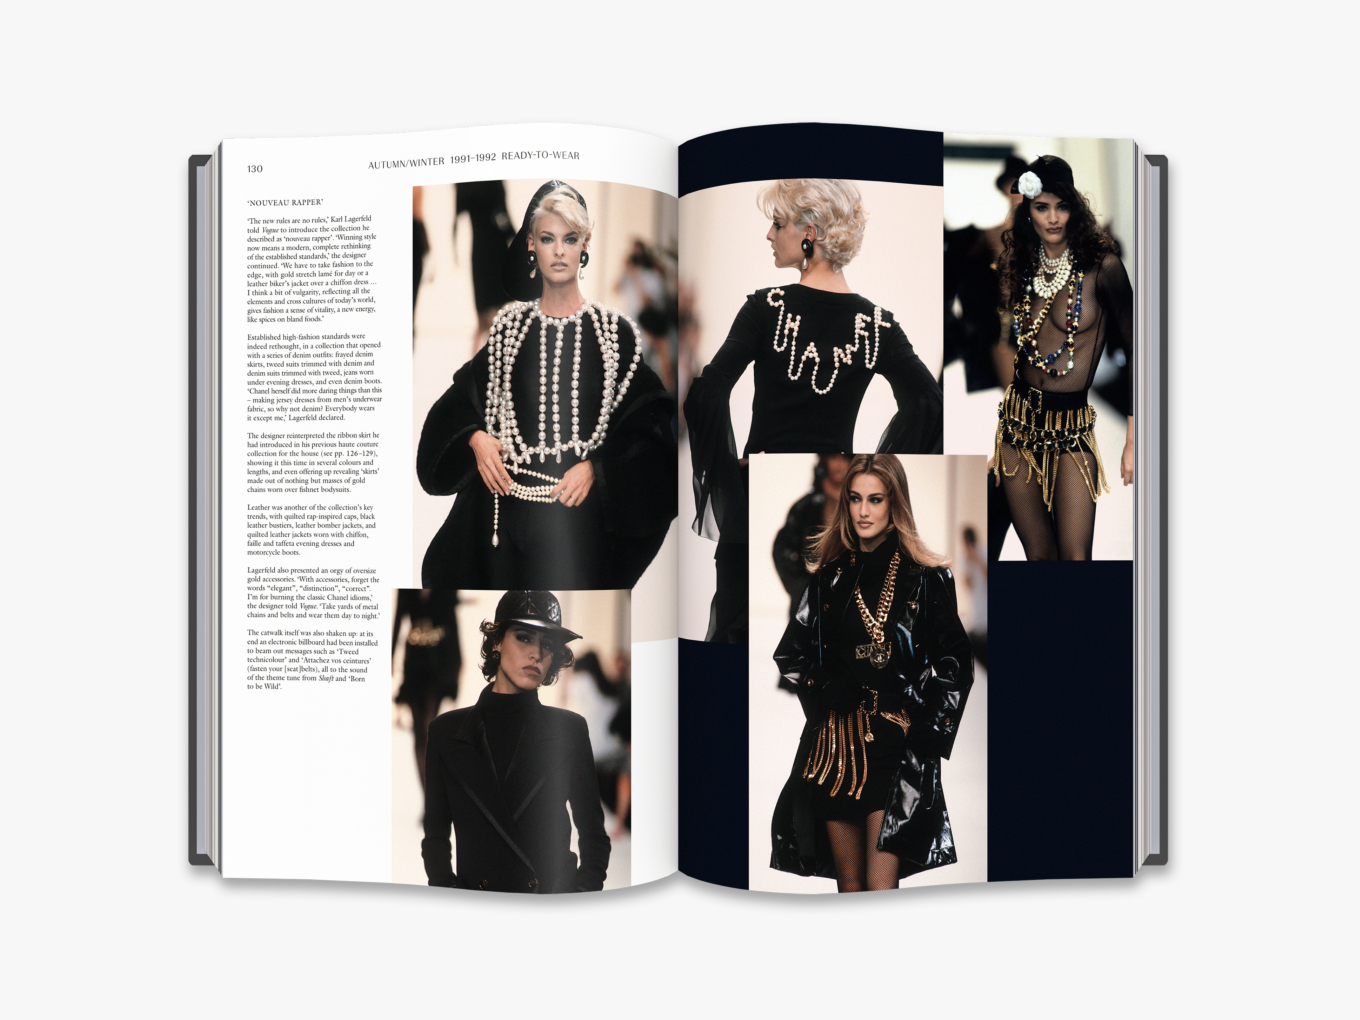 From Chanel Catwalk: The Complete Karl Lagerfeld Collections copyright Thames & Hudson 2016